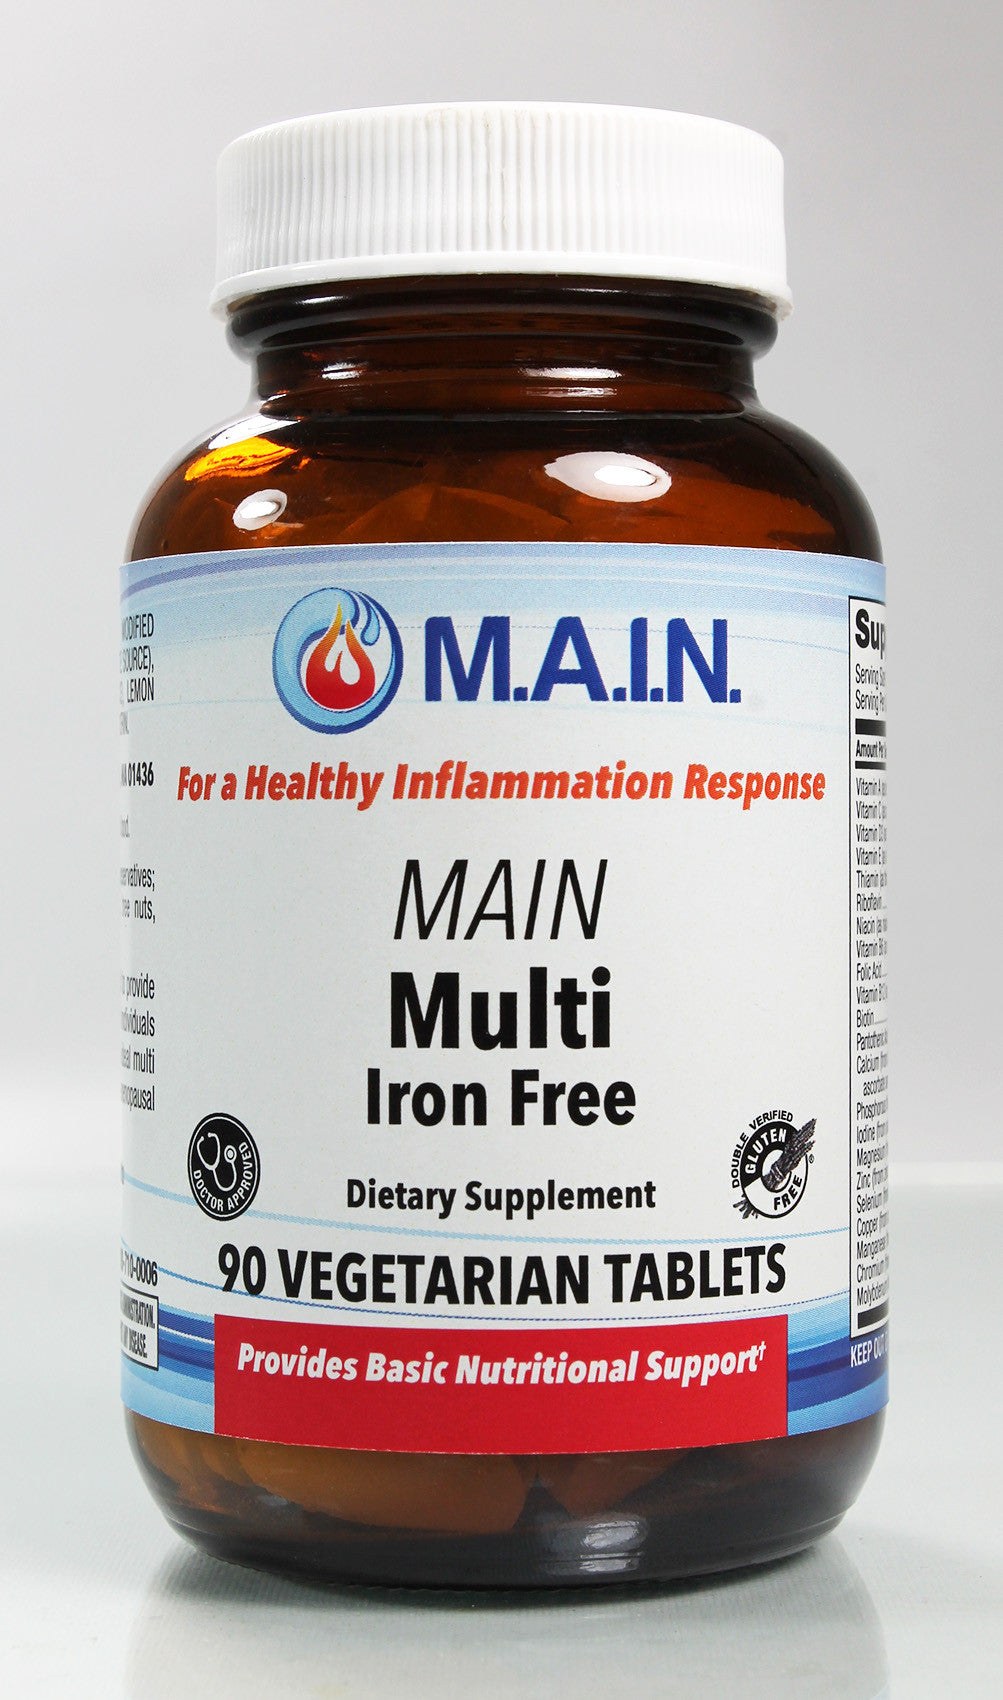 MAIN Multivitamin